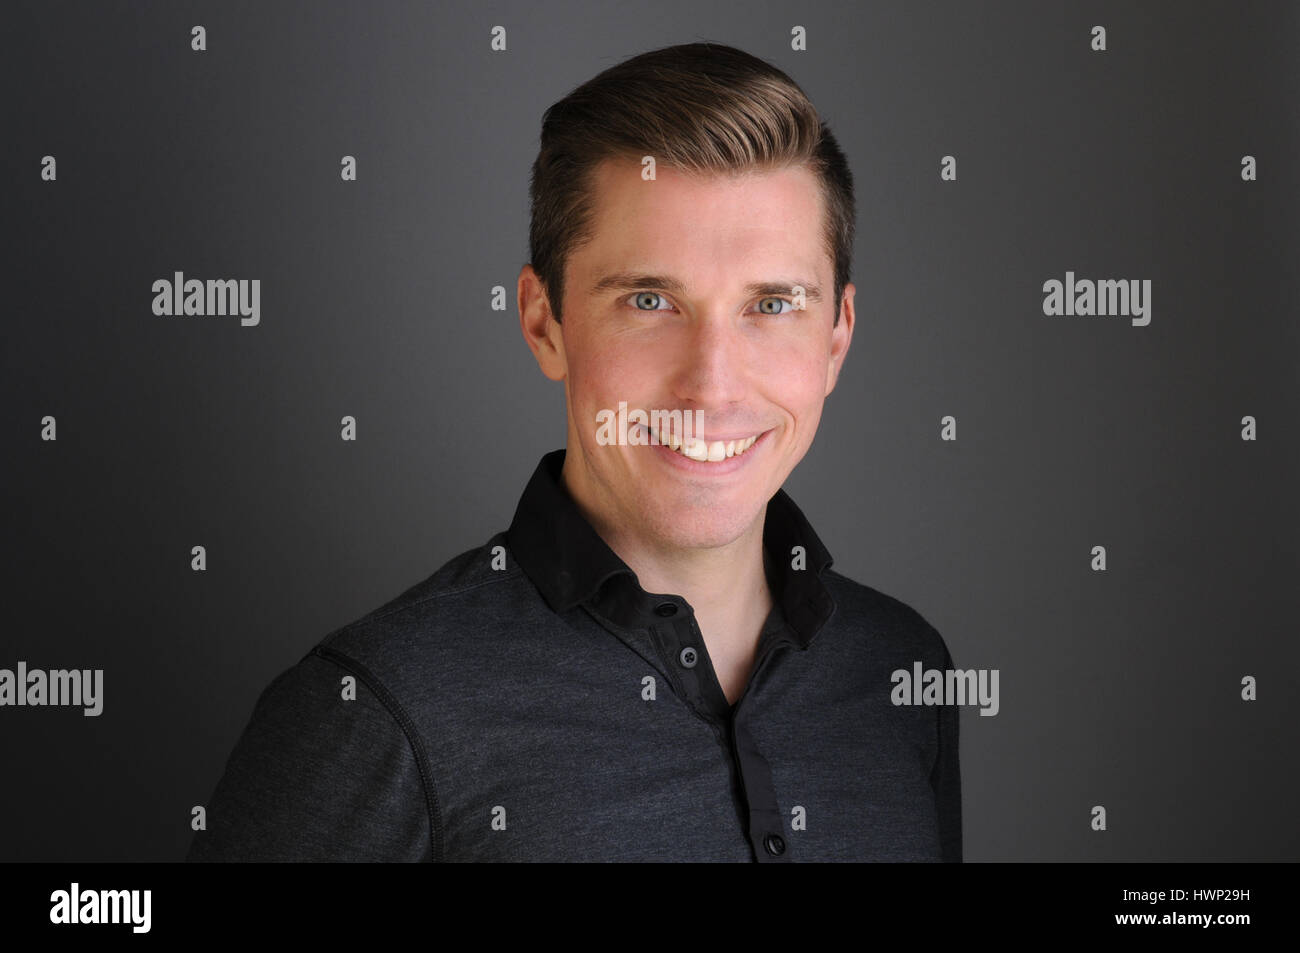 happy man smiling to camera in smart clothes - Stock Image